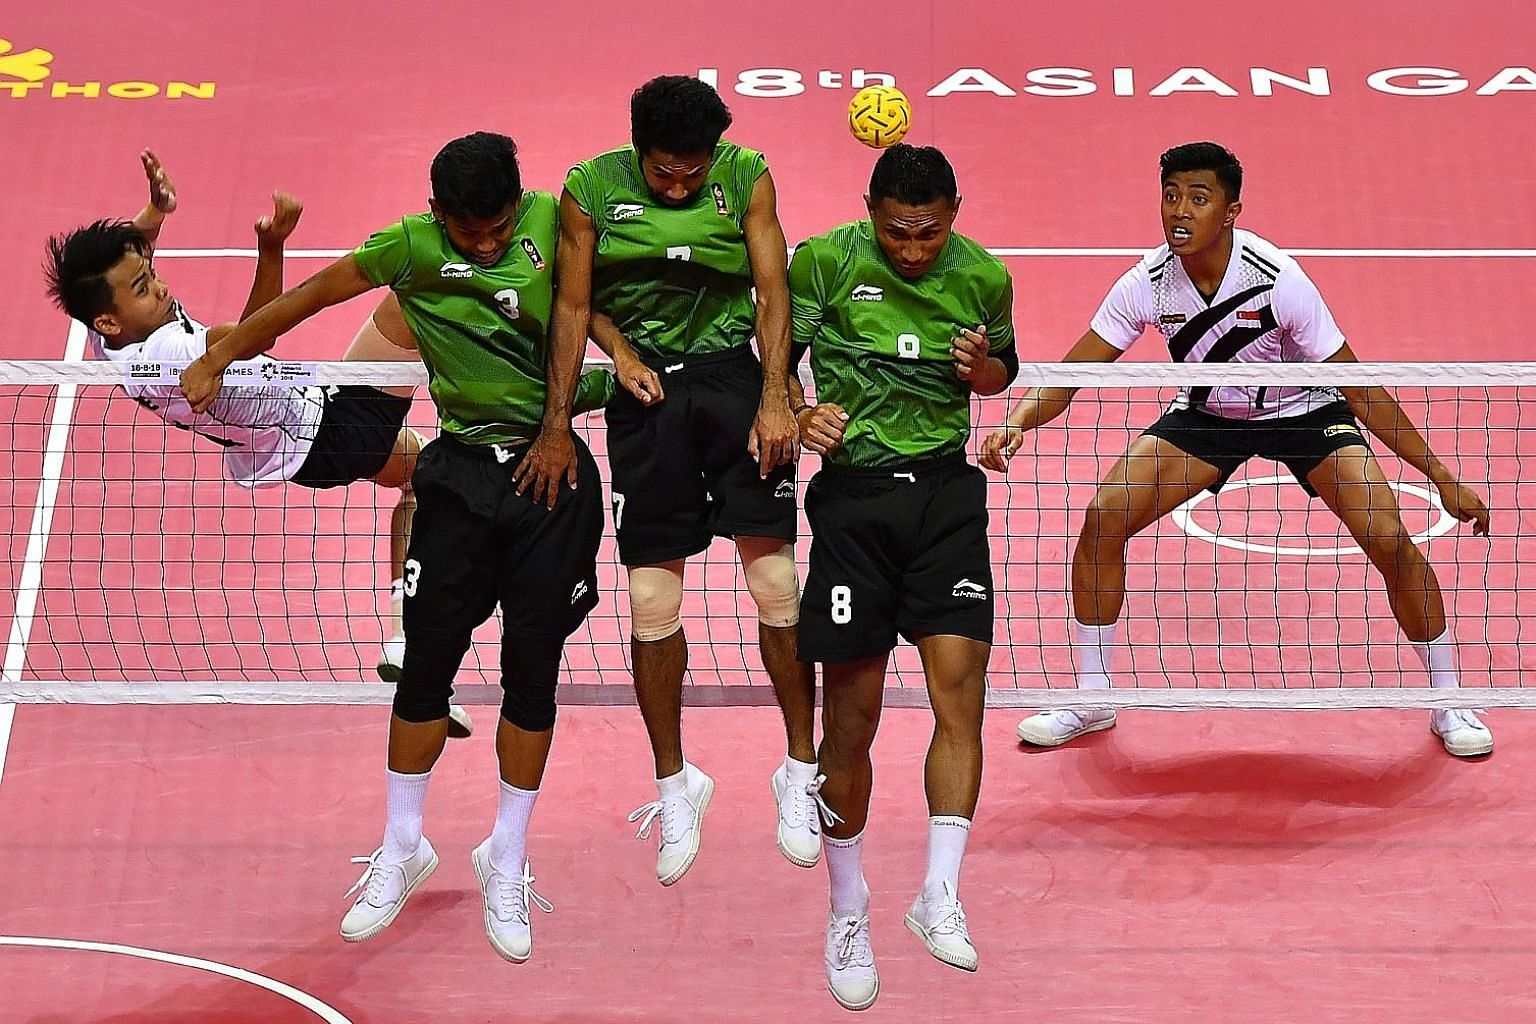 Singapore's A'fif Safiee (far left) and Khairilshamy Shamsudin find their way blocked by Indonesia in the sepak takraw men's quadrant semi-final yesterday. Singapore lost 21-8, 21-12 but earned a joint-bronze medal.